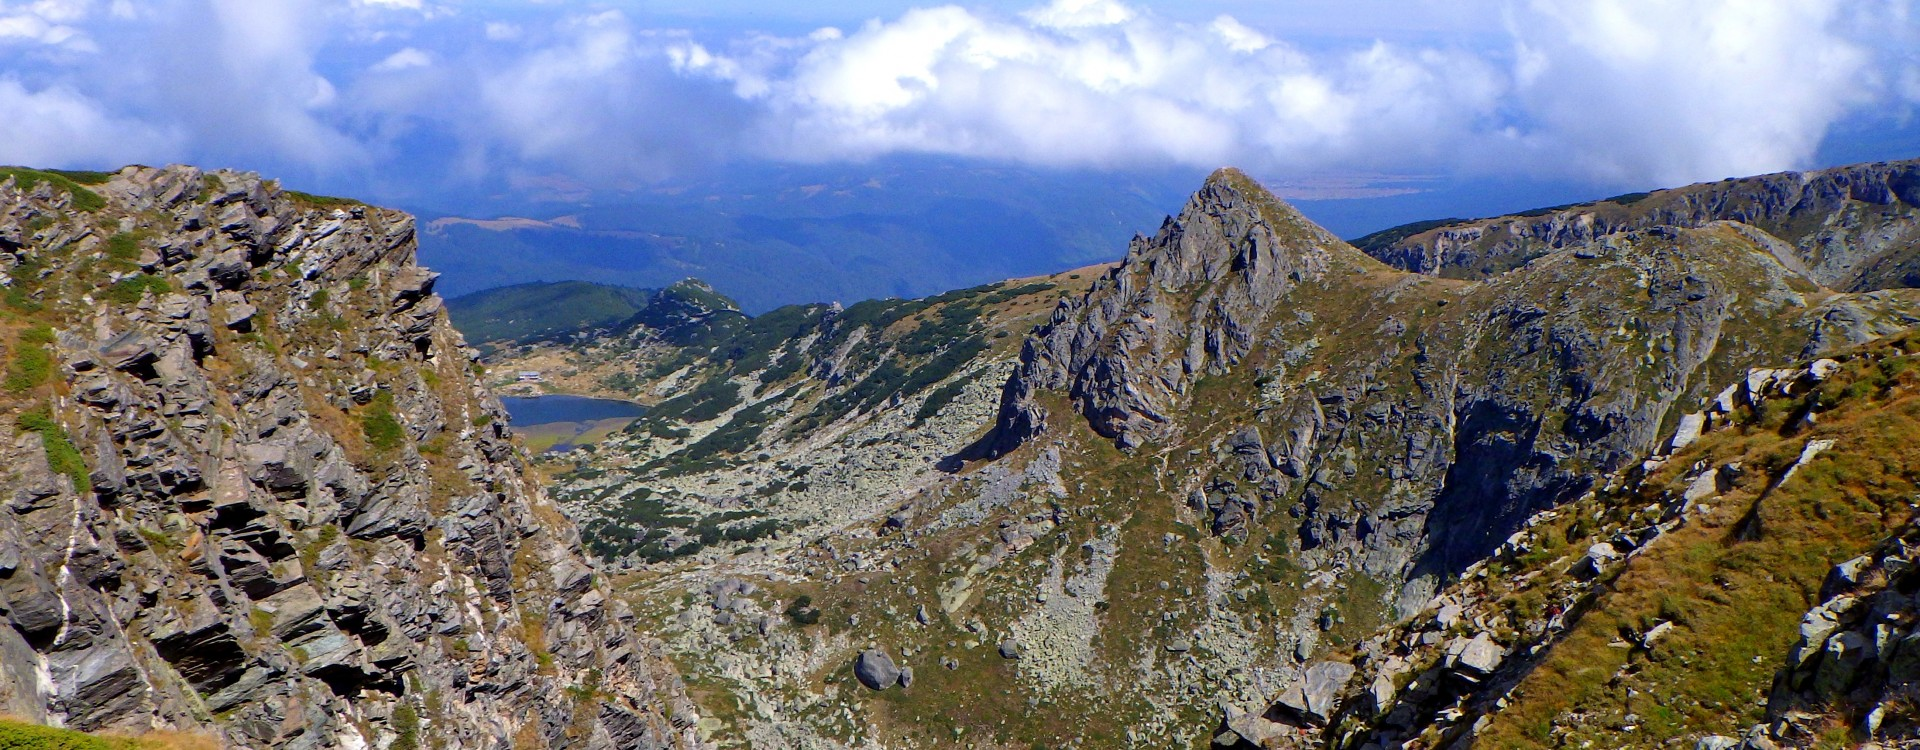 The ridges of Bulgaria